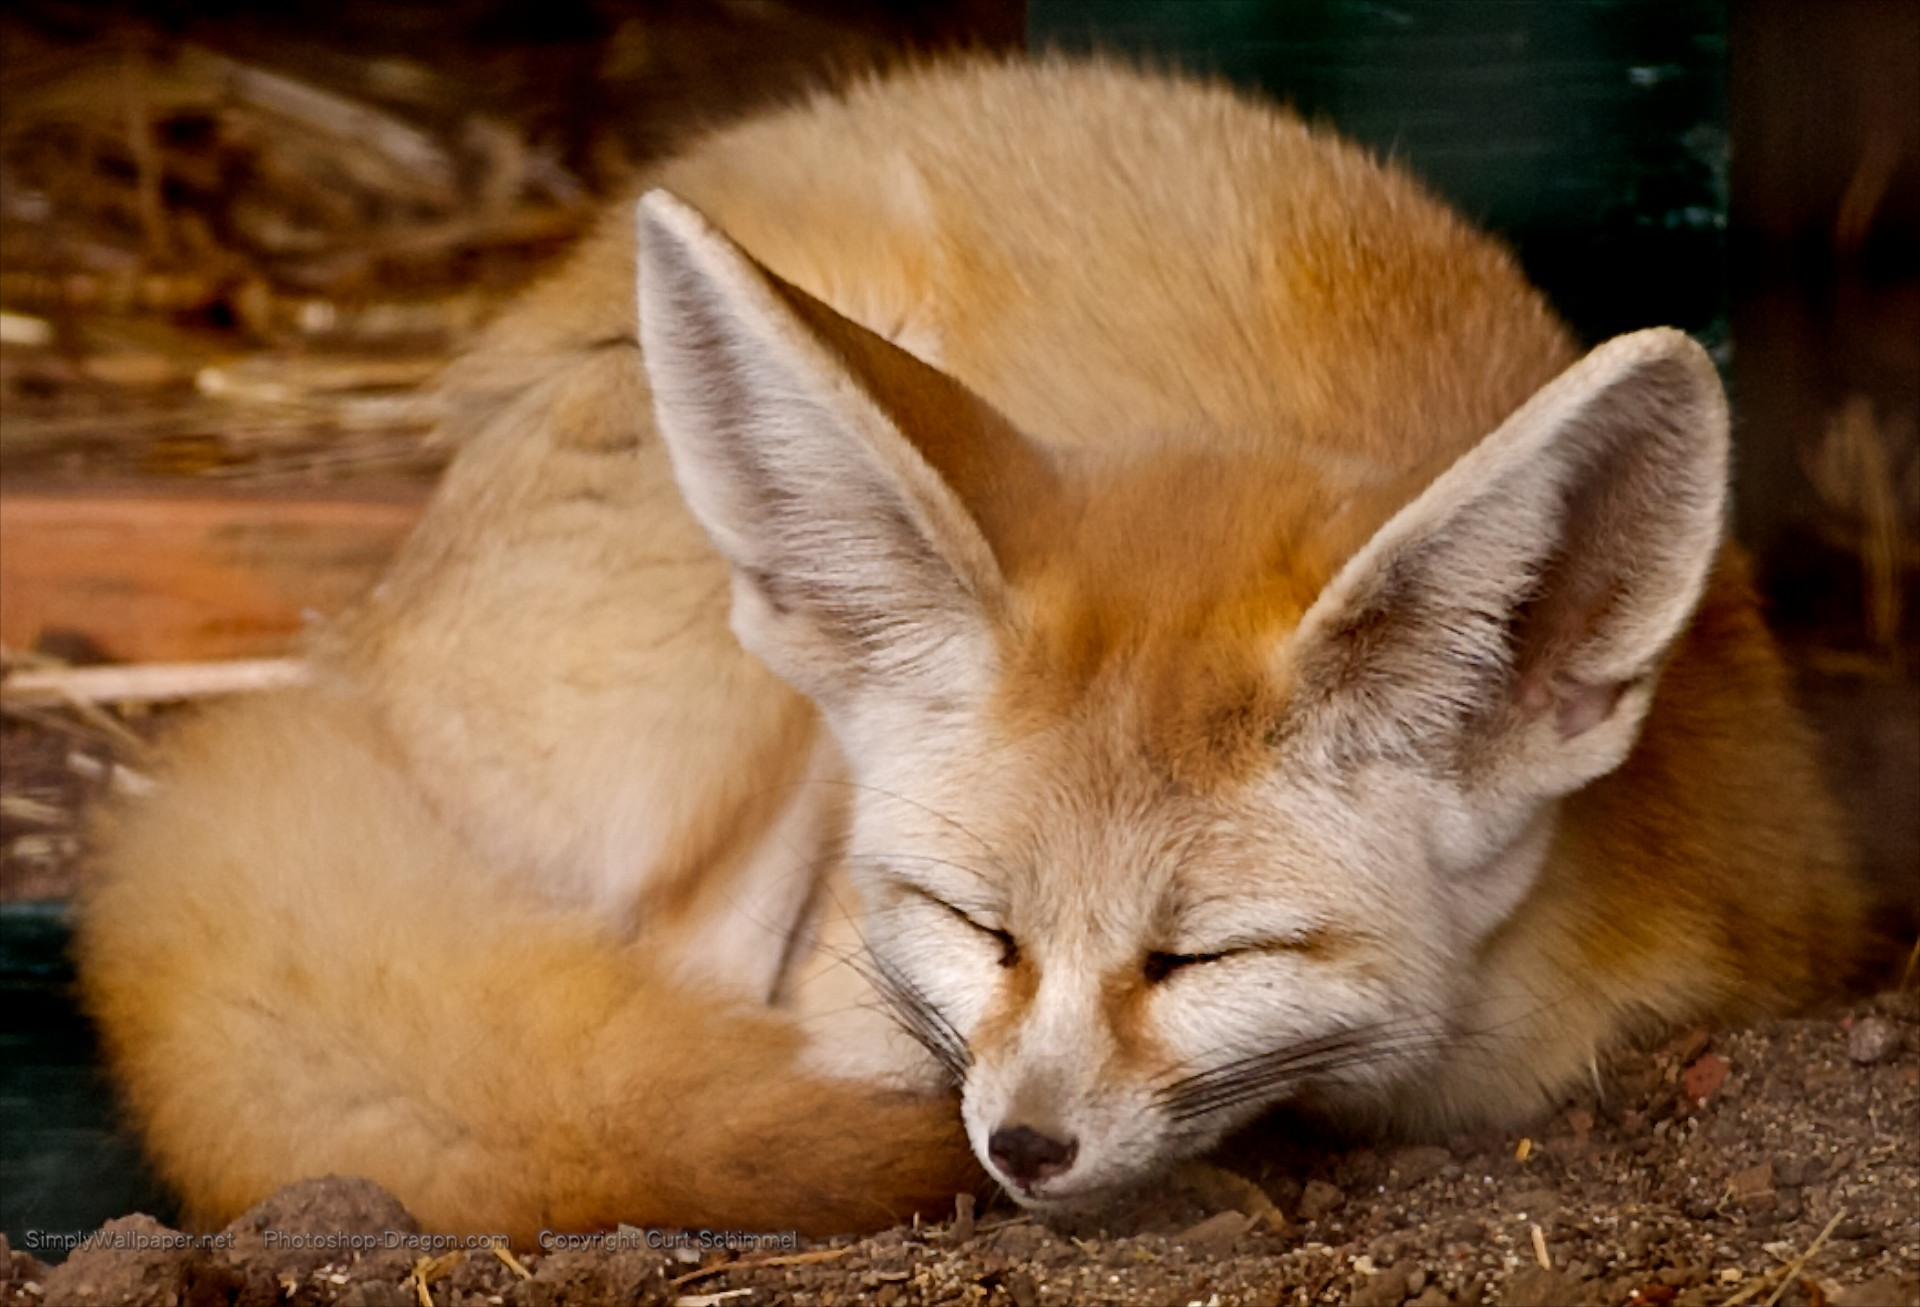 fennec foxes Fennec foxes questions including what did the fennec fox evolve from and is the fennec fox species threatened or endangered.